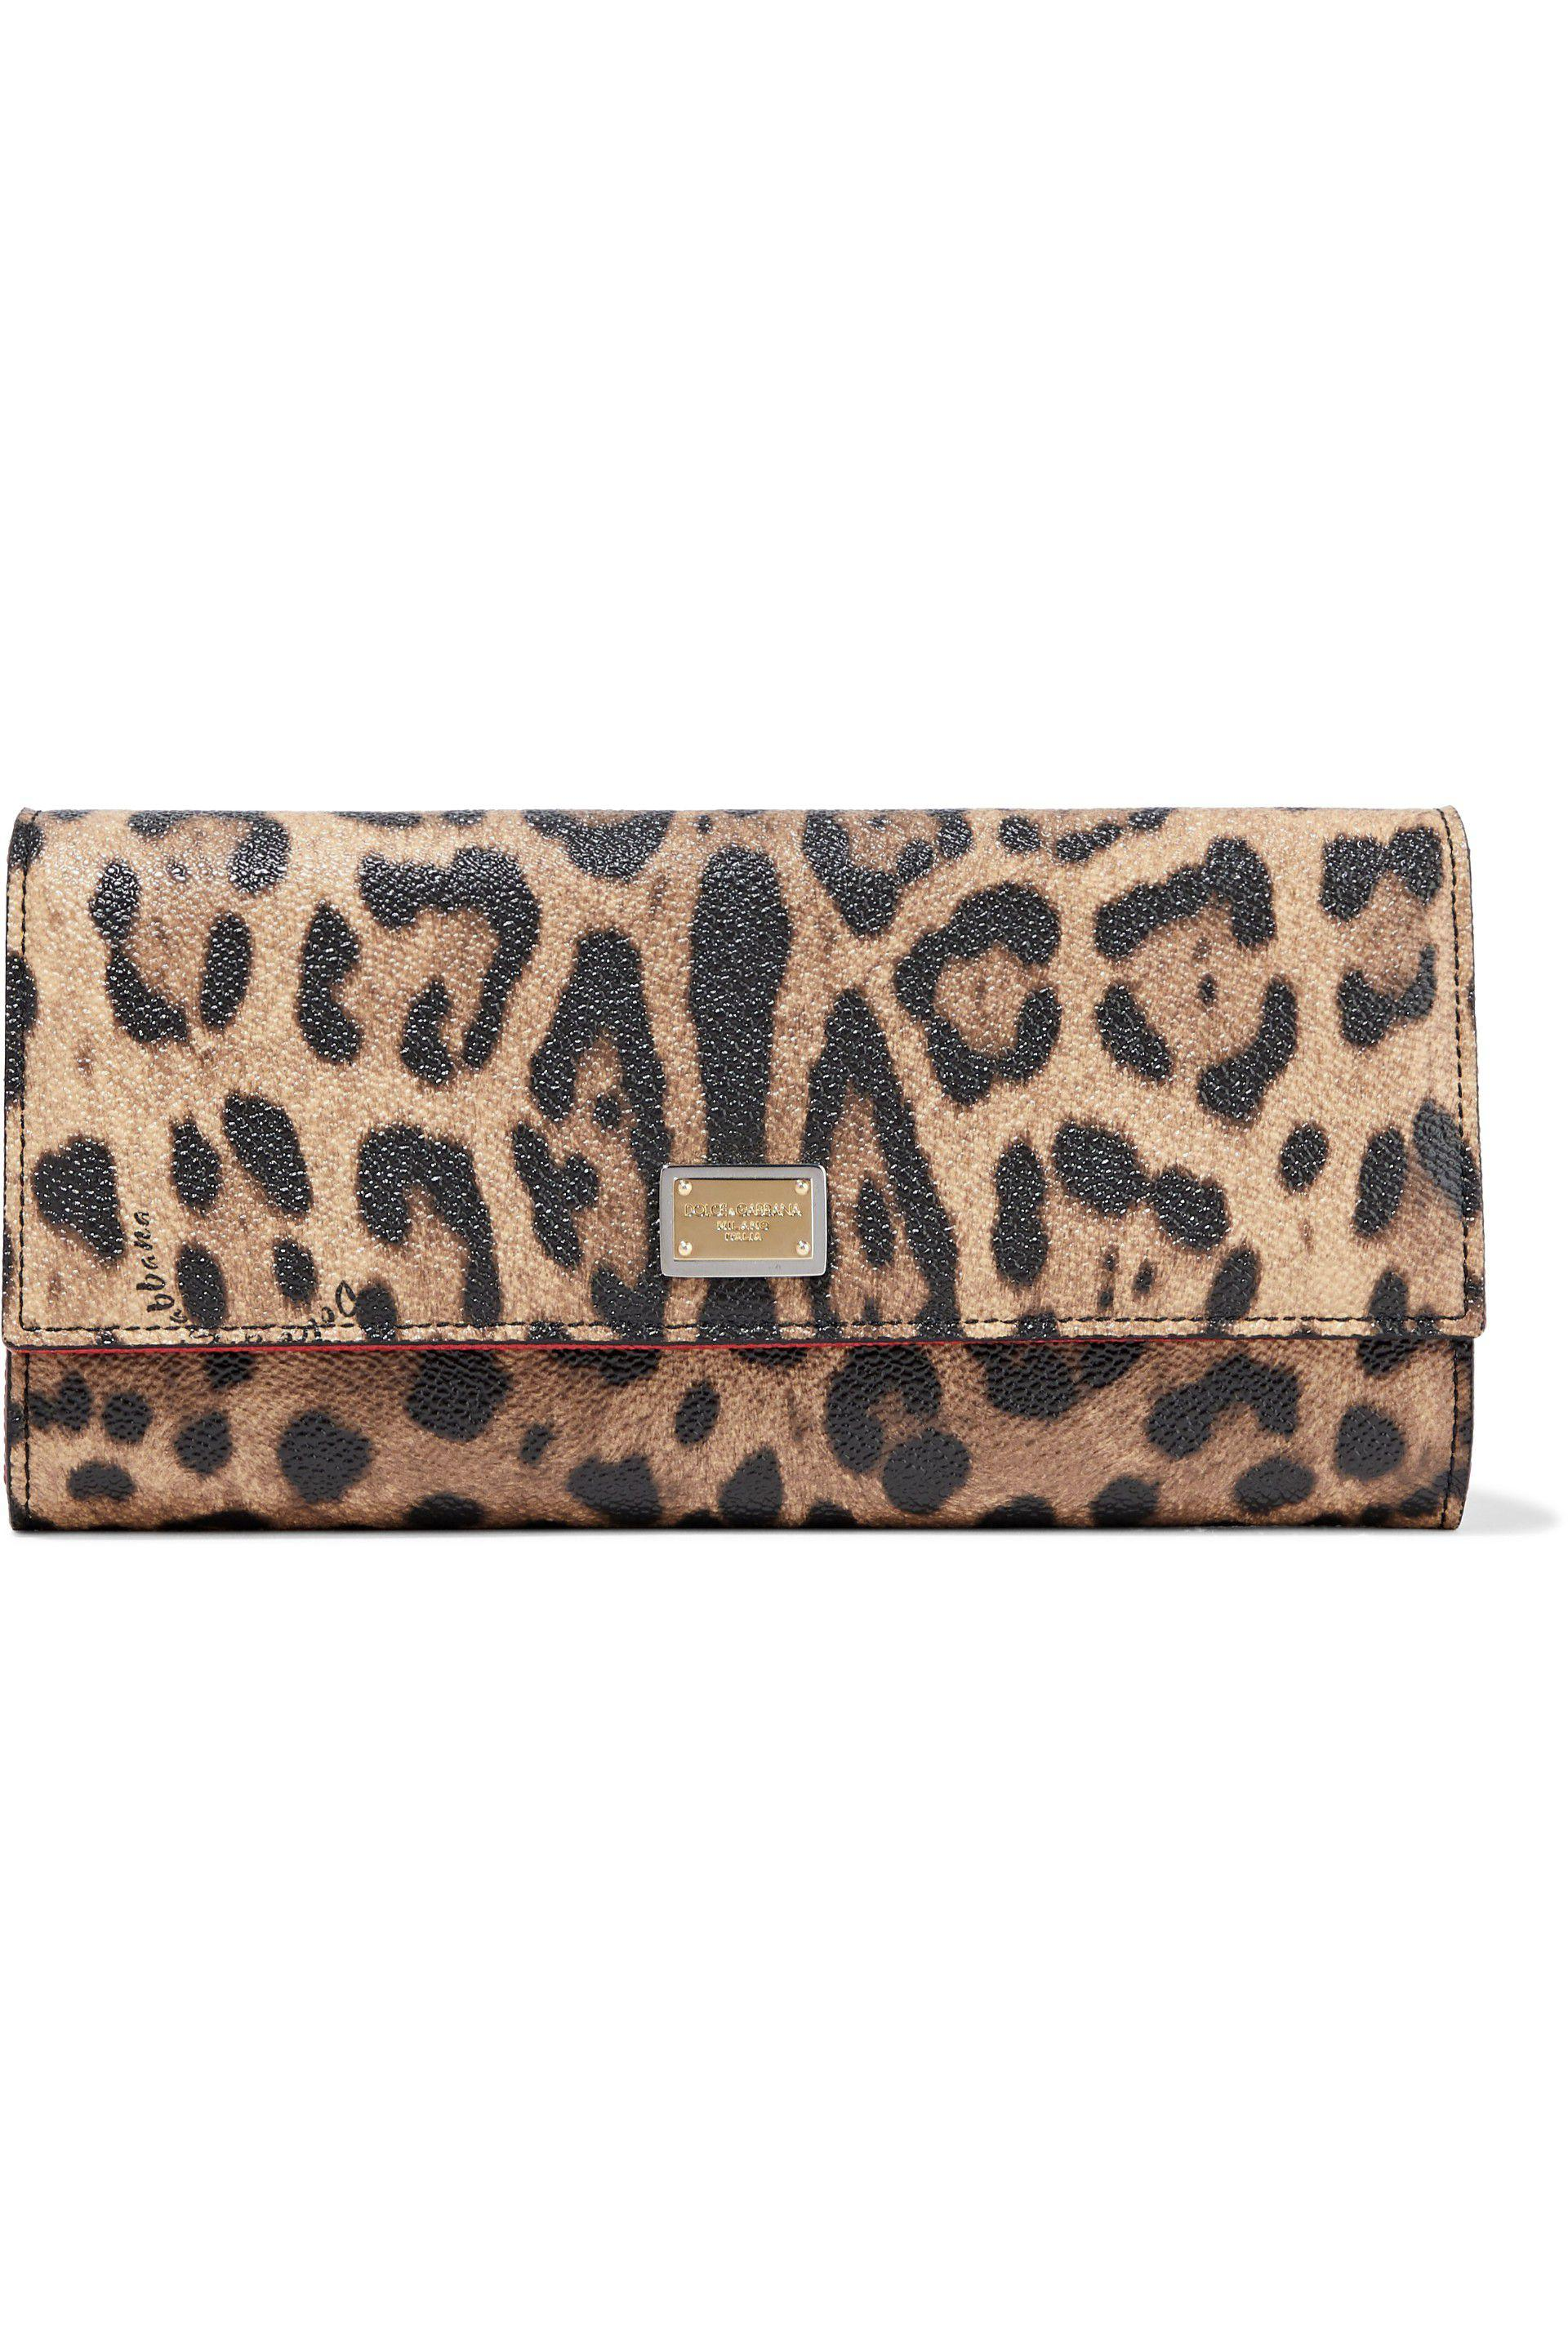 58d9e75f7803 Dolce & Gabbana - Multicolor Woman Leopard-print Textured-leather Wallet  Animal Print -